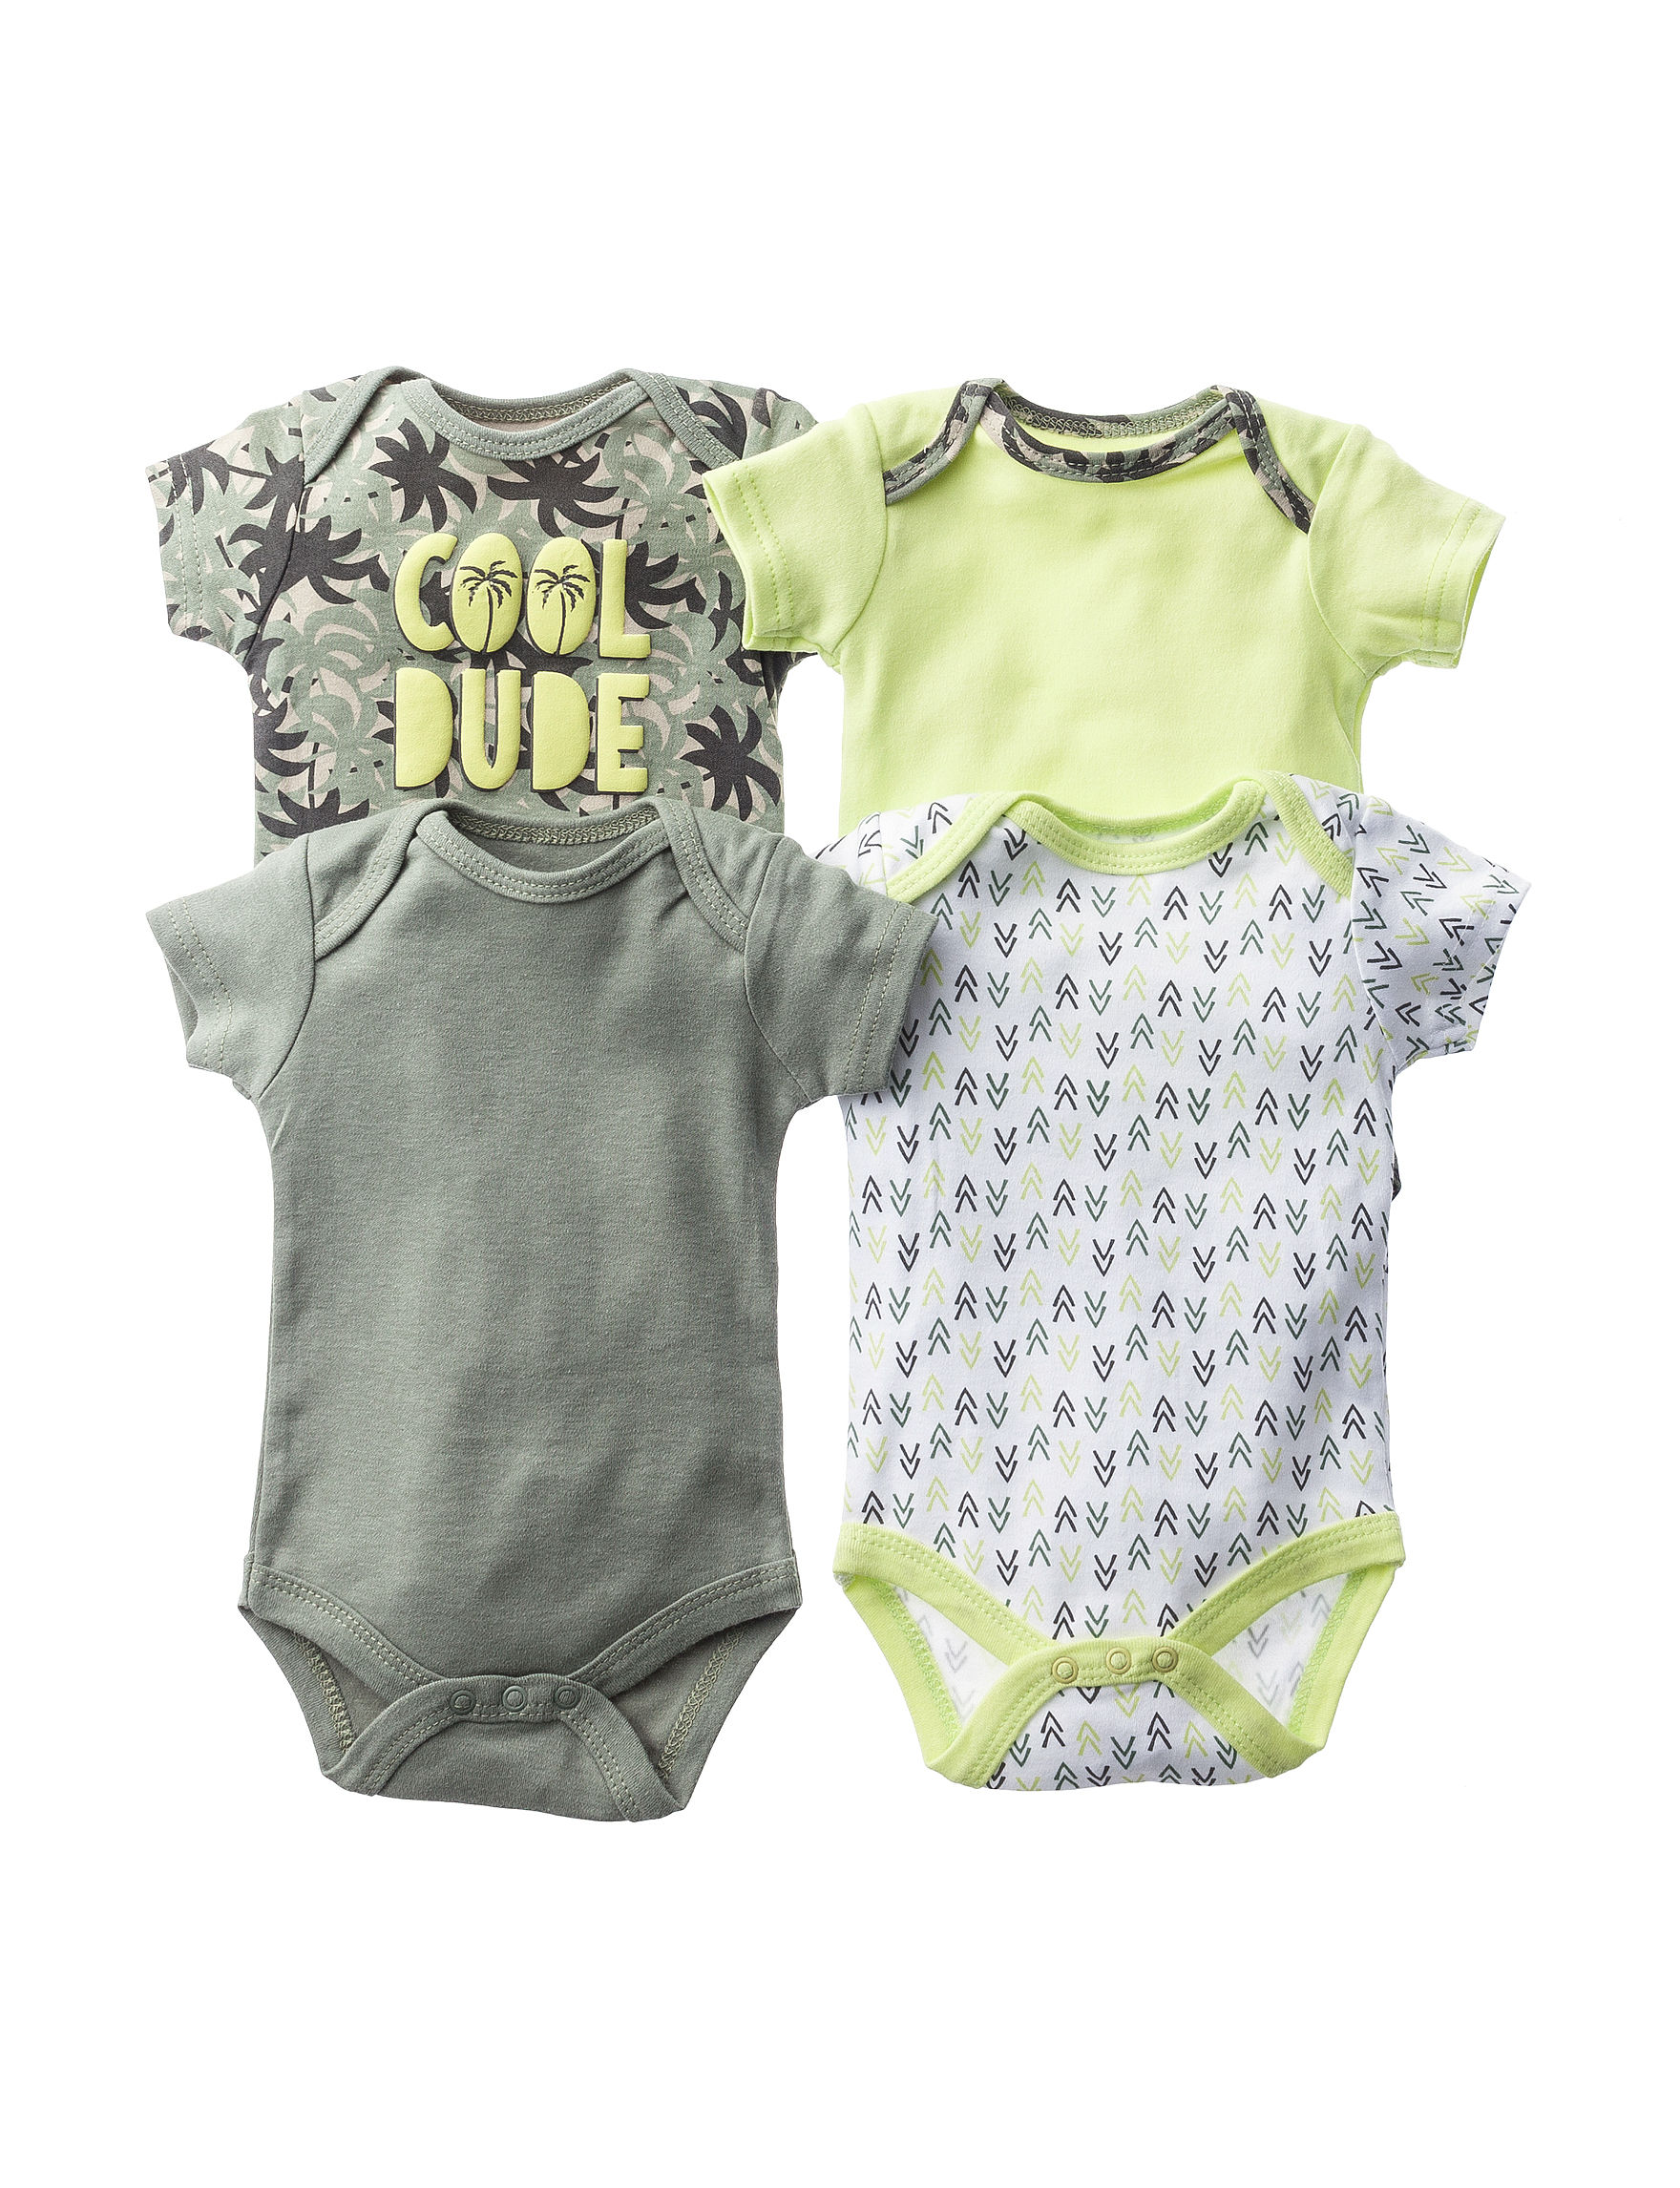 Baby Gear Olive